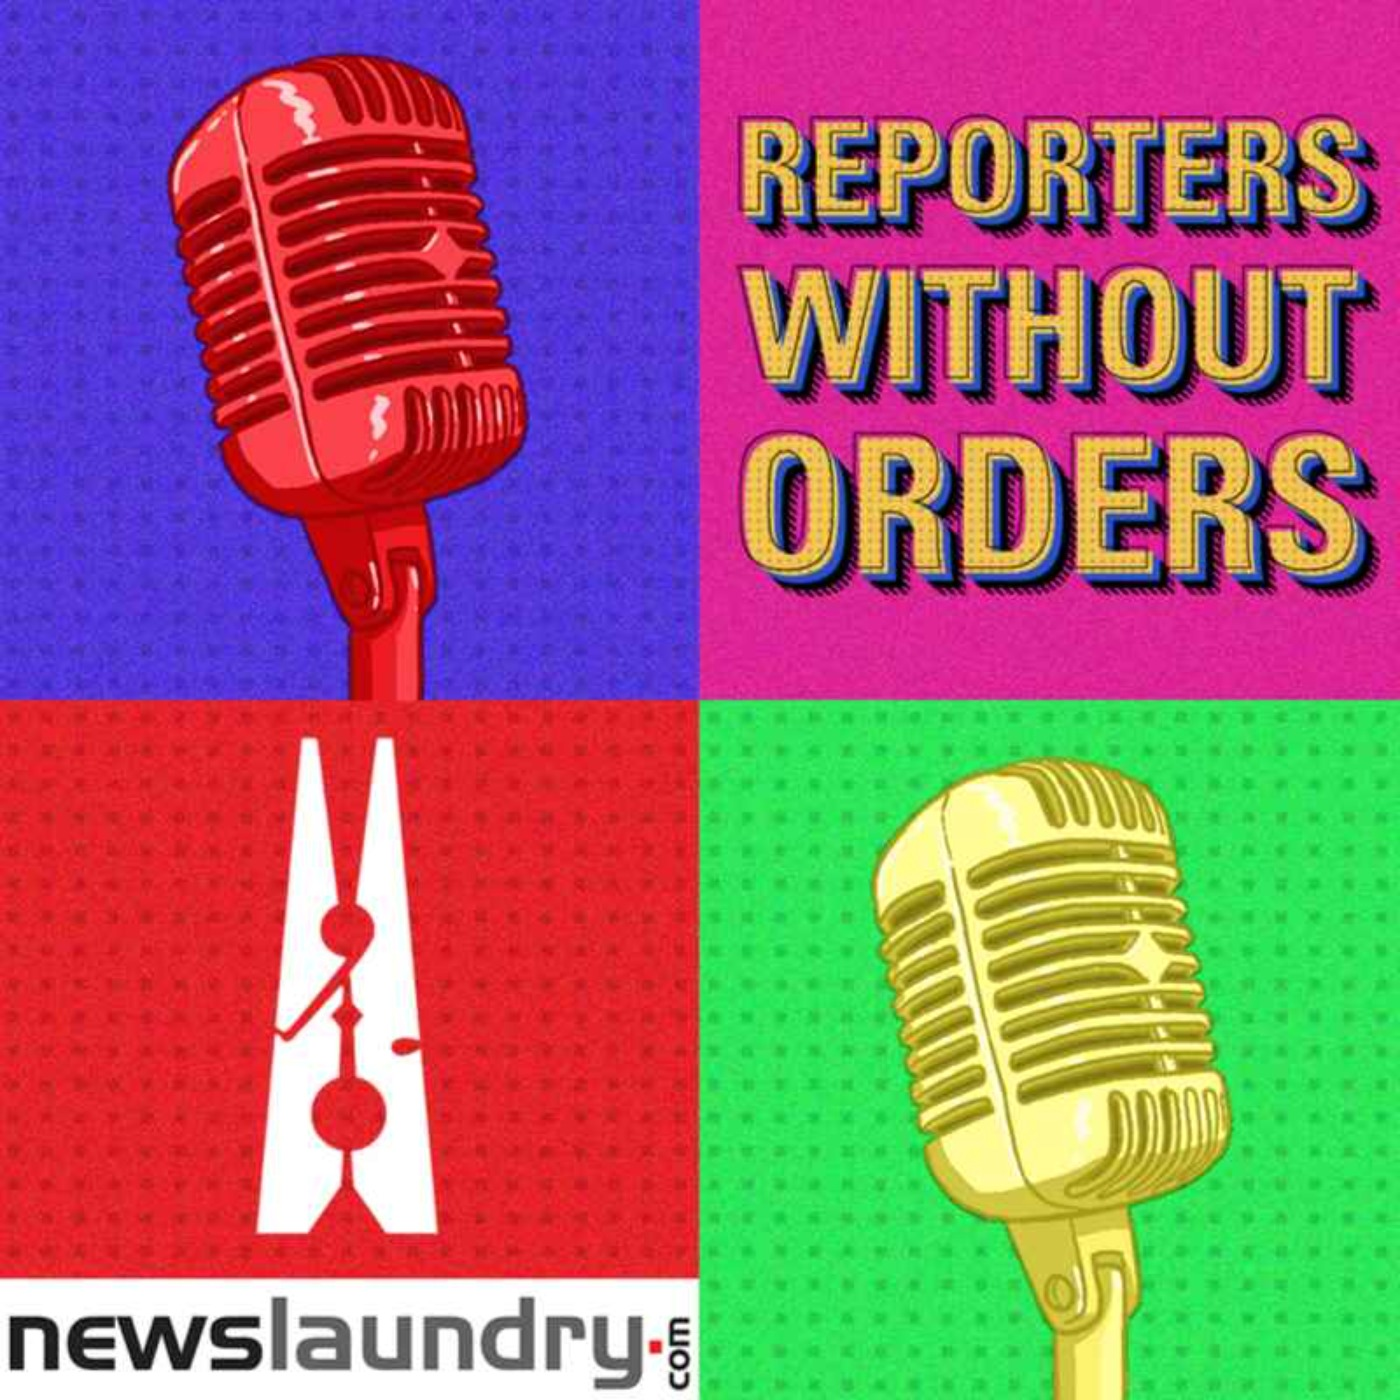 Reporters Without Orders Ep 158: Revisiting the carnage in Delhi and UP job aspirants